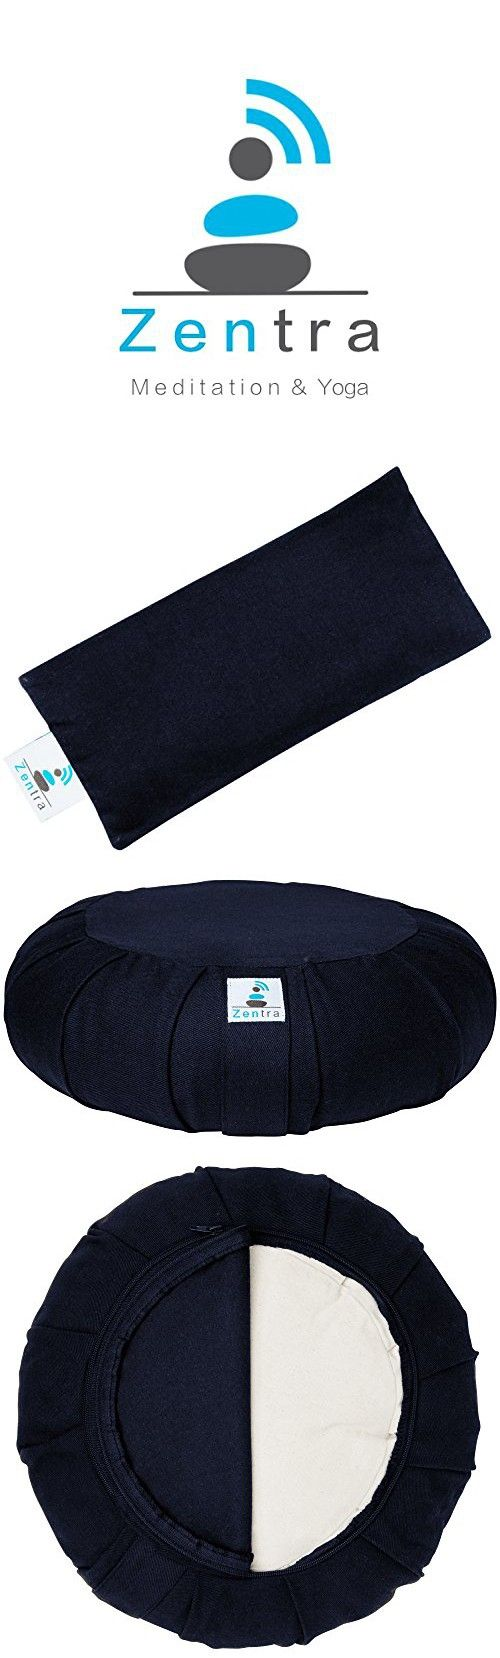 Zentra Zafu Yoga MEDITATION CUSHION with BONUS EYE PILLOW - 100% Natural Cotton - Designed for Quality, Comfort, and Durability - Satisfaction Guaranteed (Navy Blue)